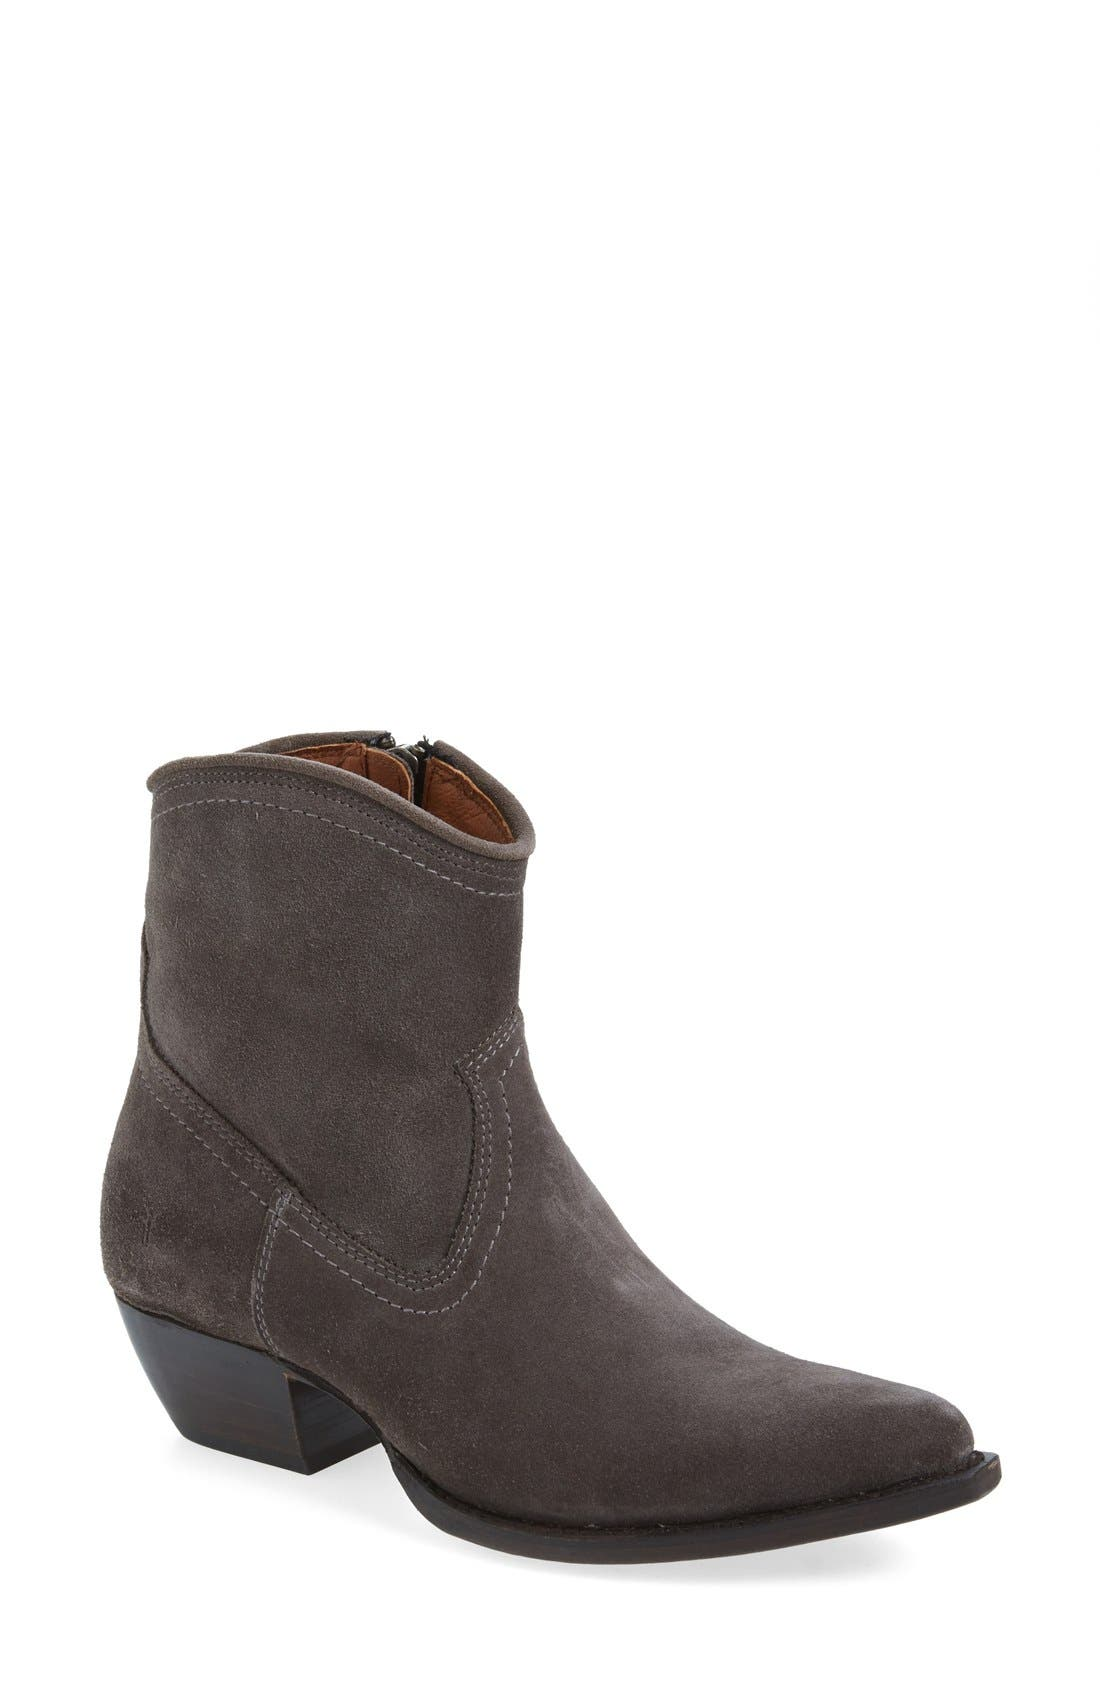 Main Image - Frye 'Sacha' Short Boot (Women)